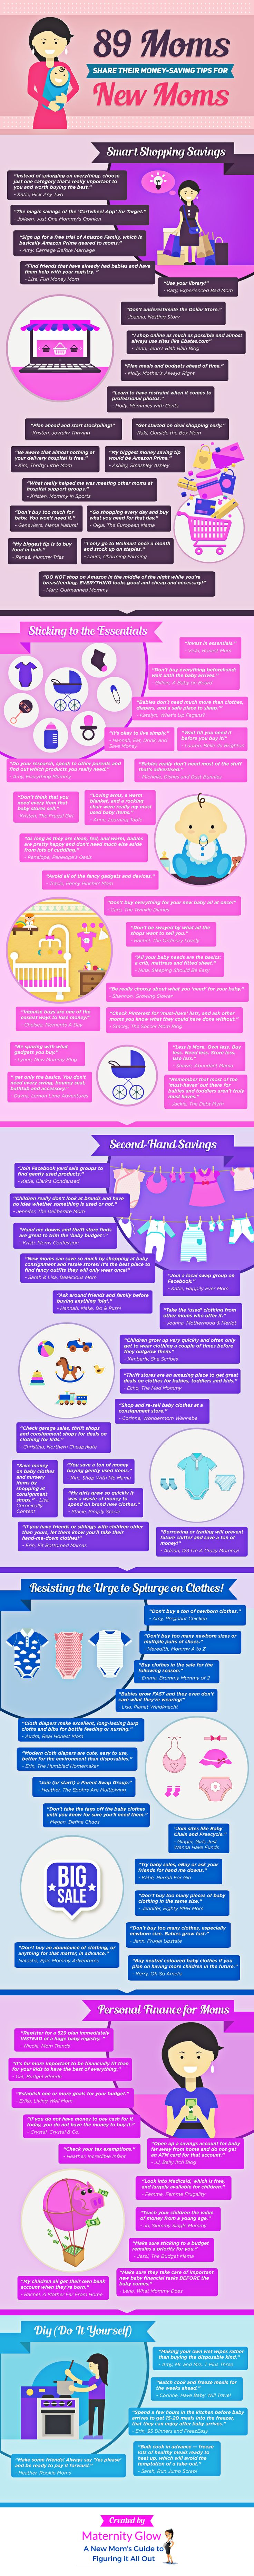 89 Moms Share Their Money-Saving Tips for New Moms 89 Moms Share Their Money-Saving Tips for New Moms (Infographic)